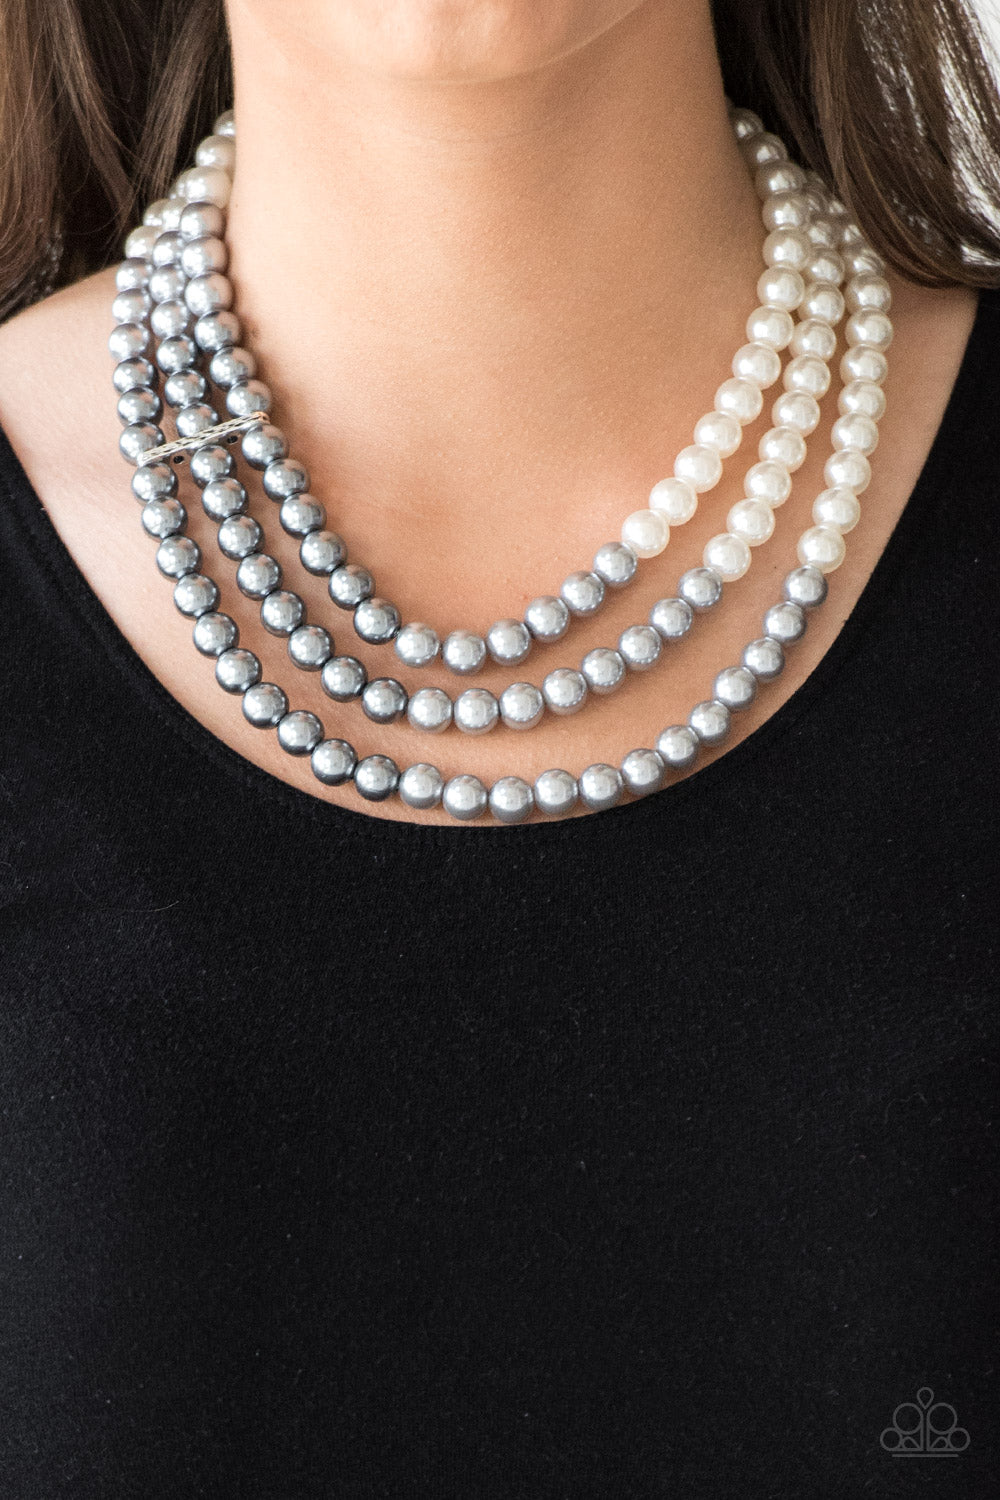 Paparazzi - Times Square Starlet - Multi Necklace - Classy Jewels by Linda